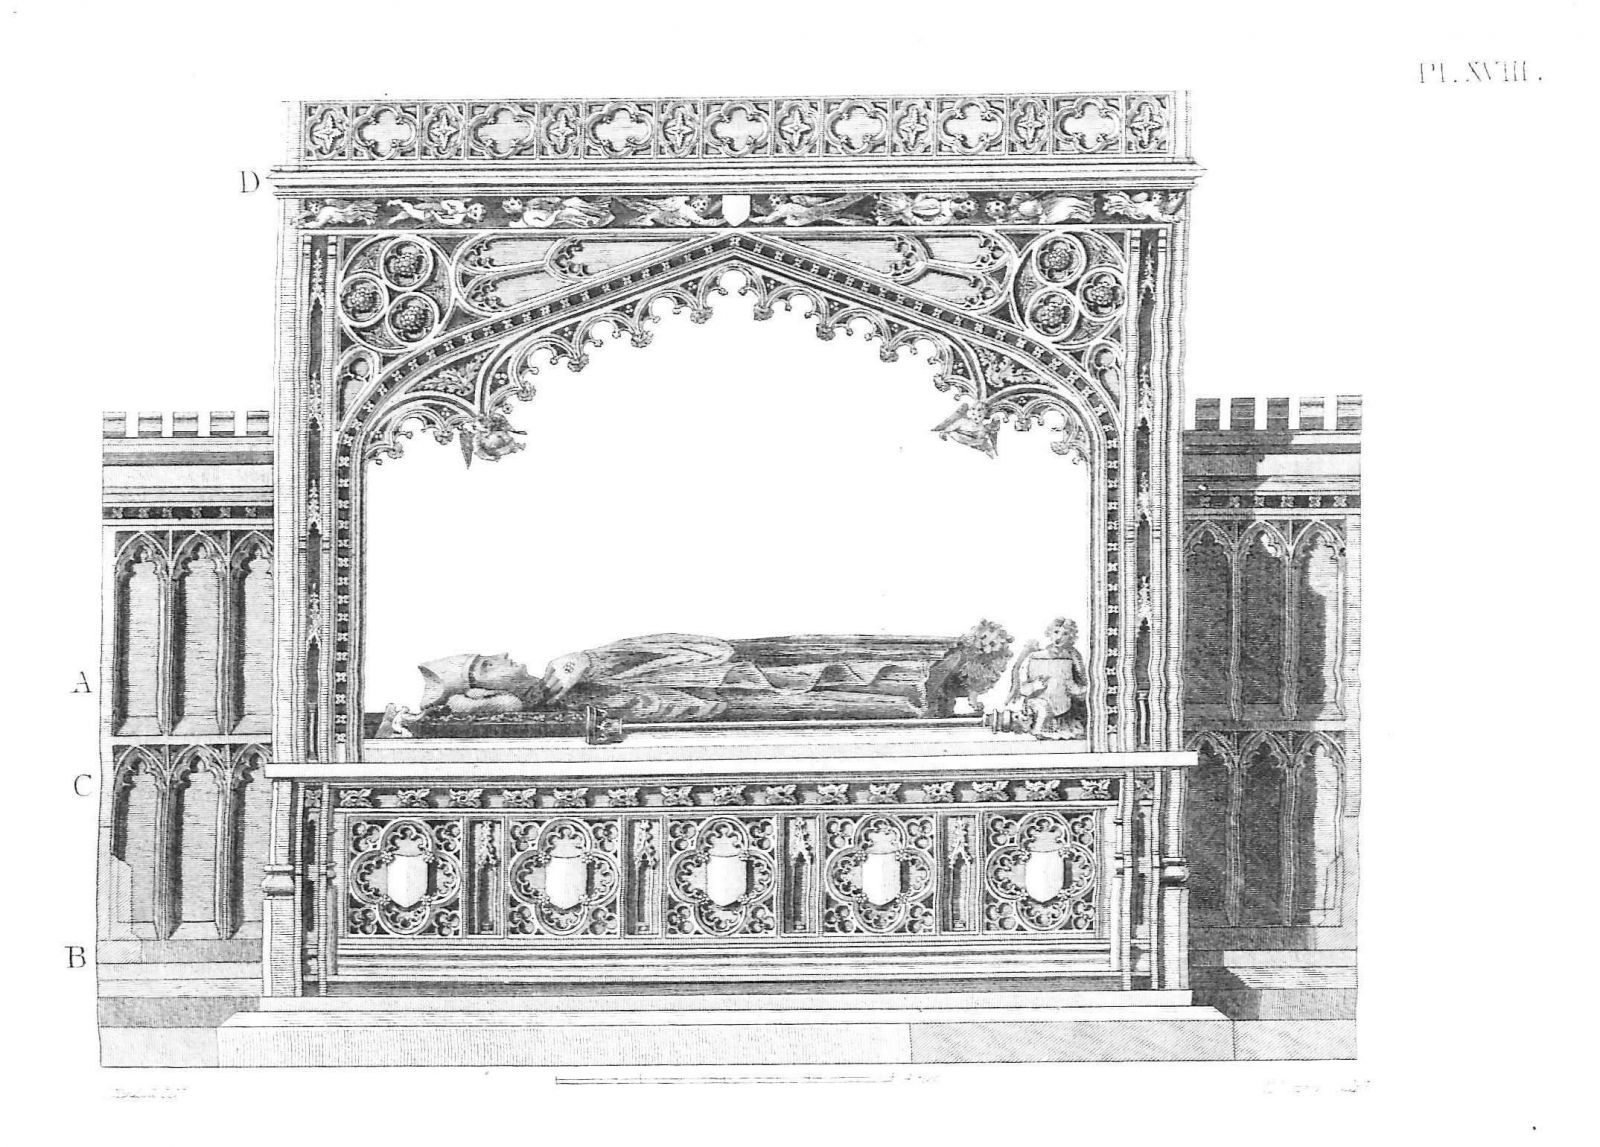 Fig. 5. Canopy tomb of Bishop Branscombe, after 1280, Exeter Cathedral